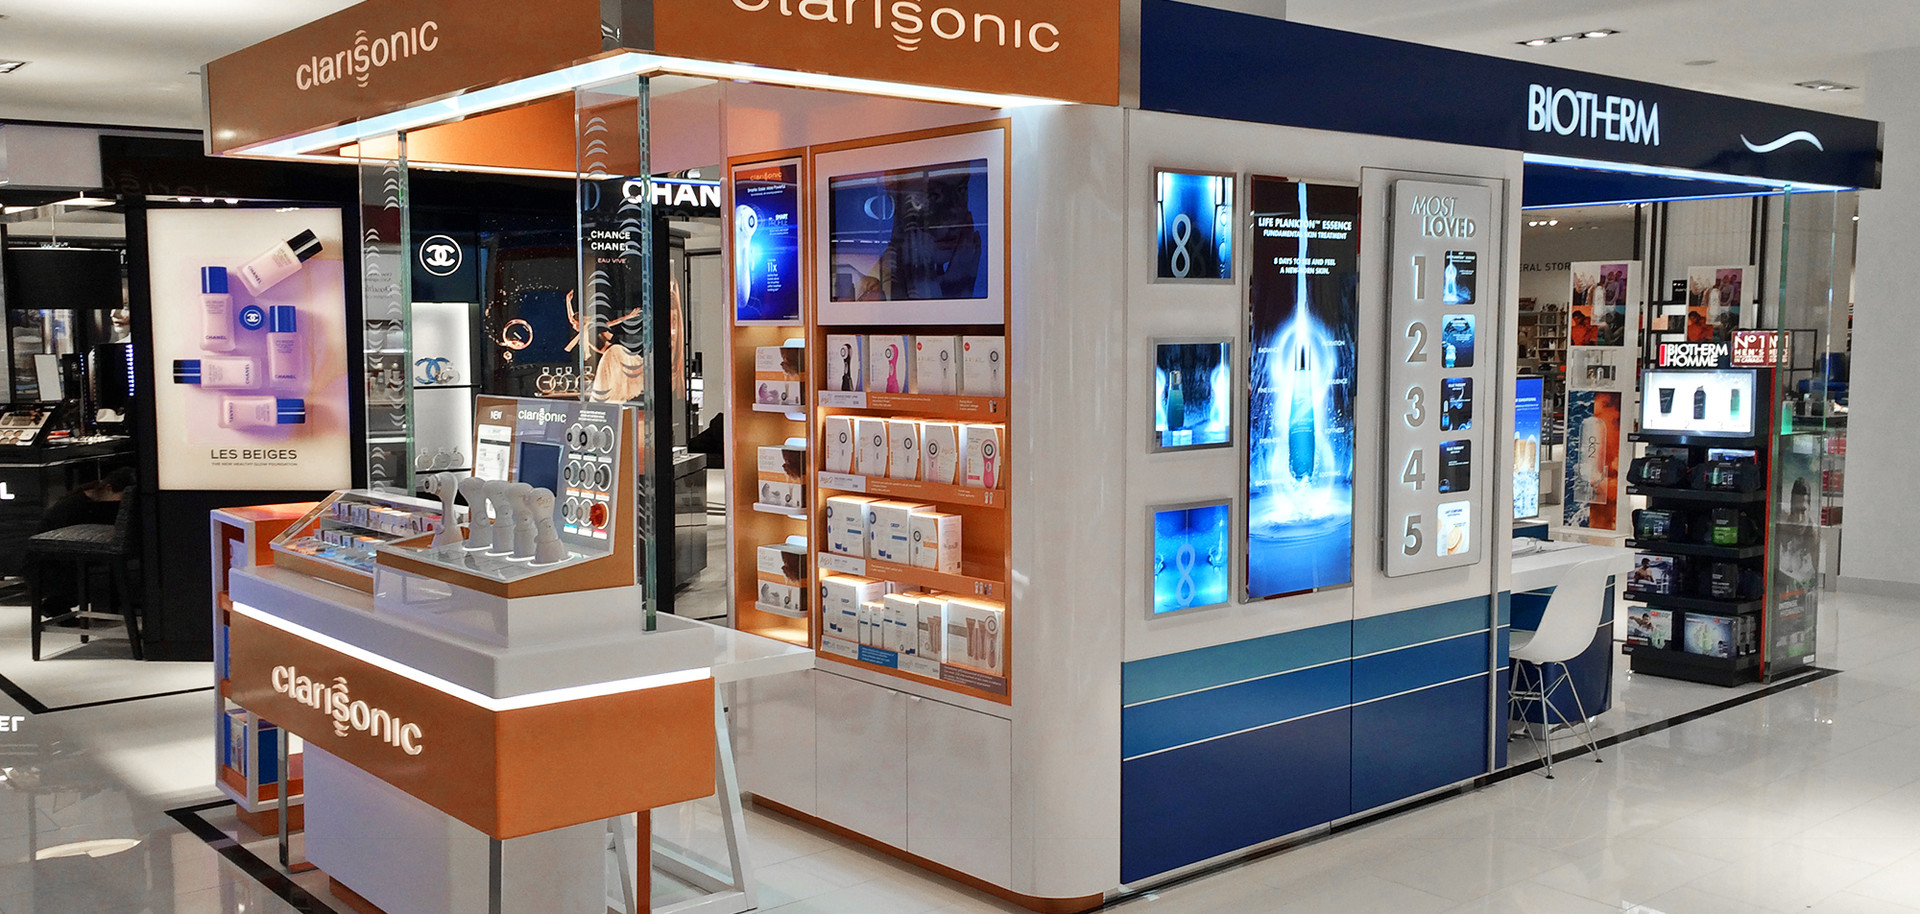 Clarisonic and Biotherm kiosk pop up store